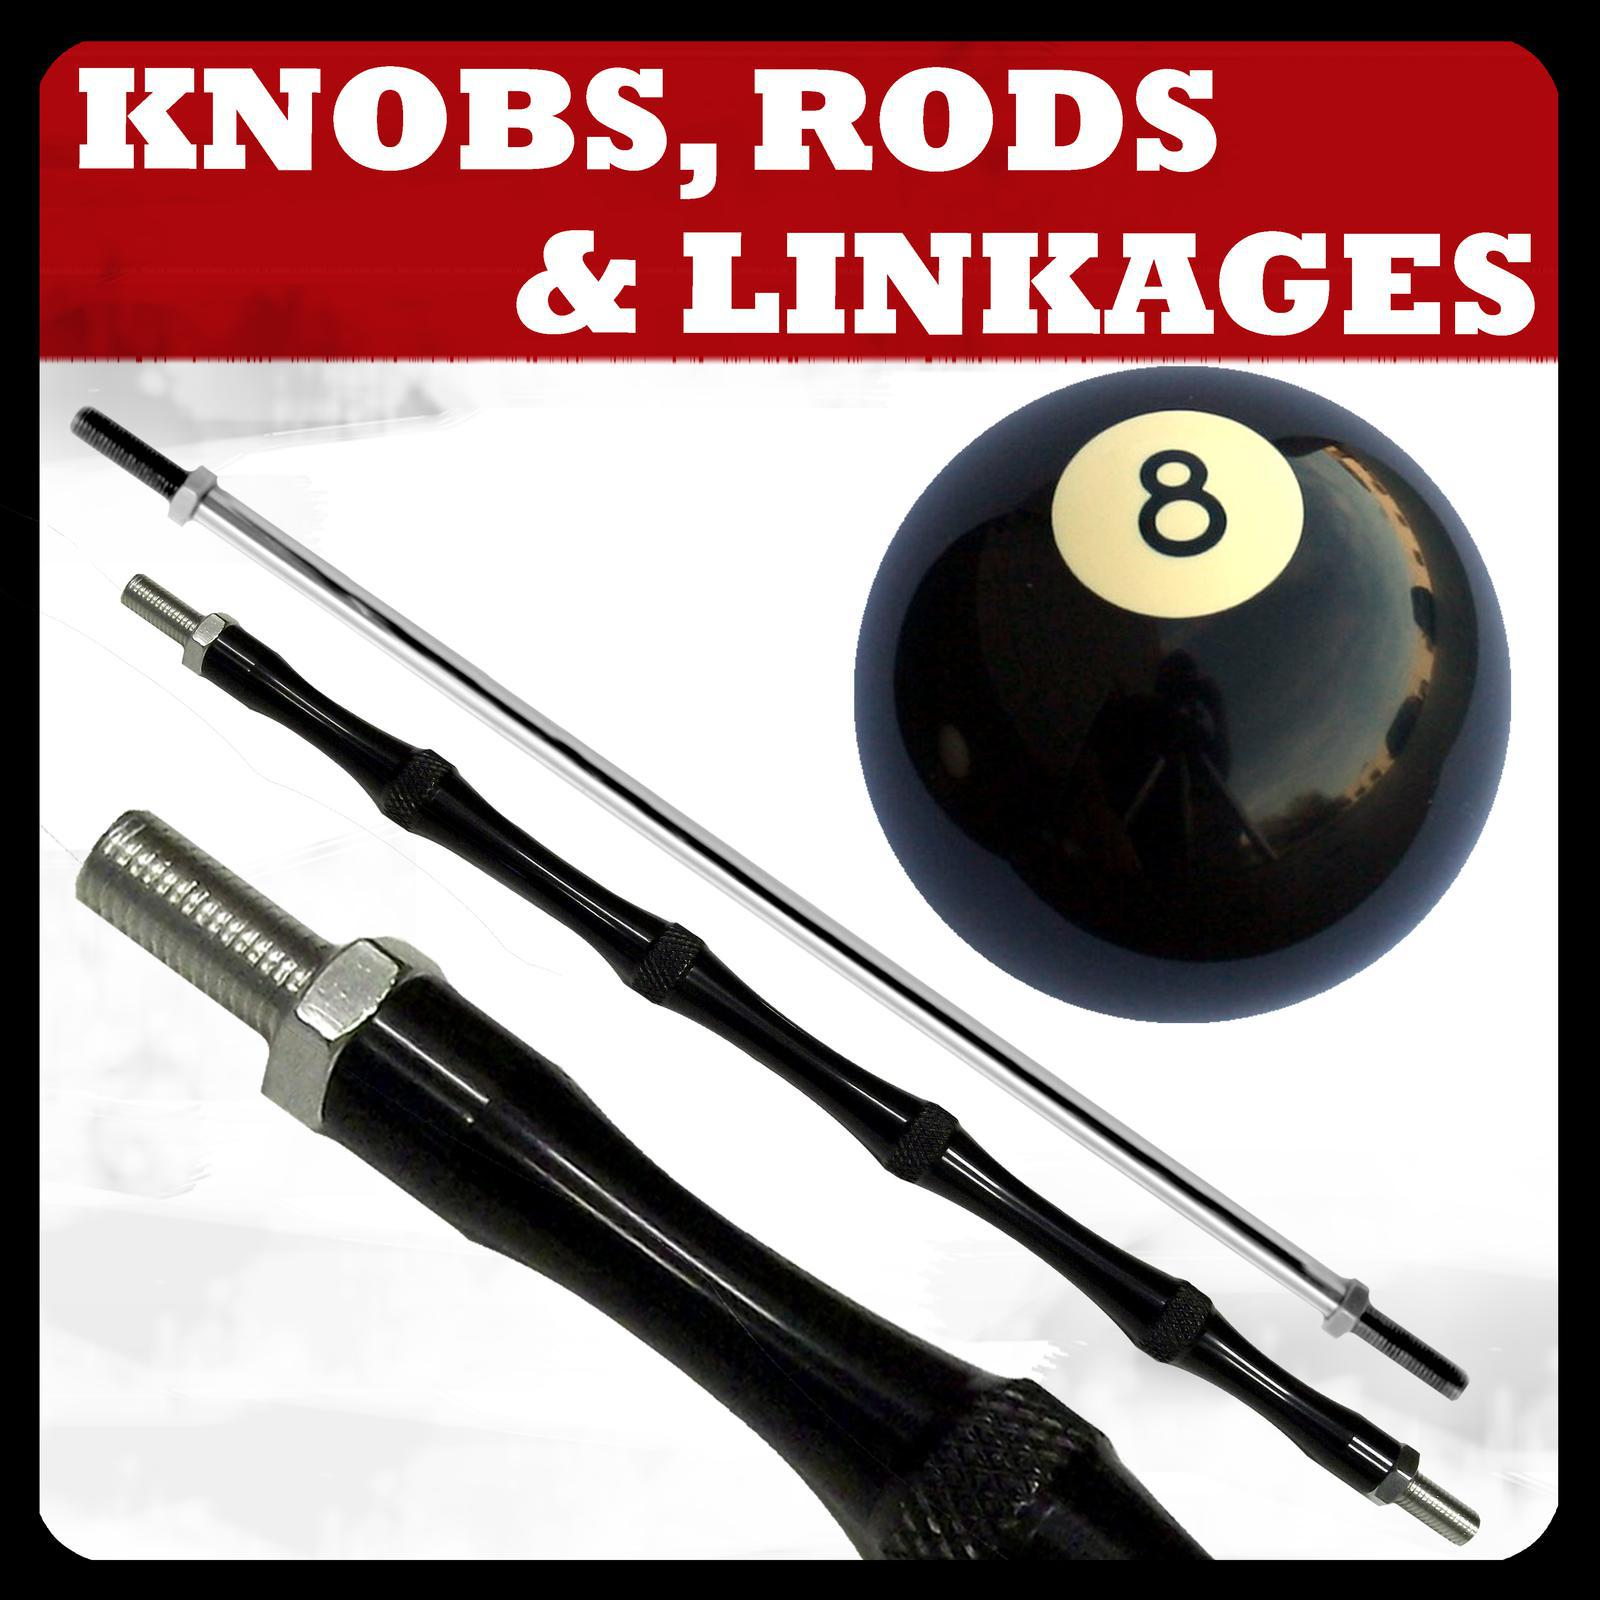 Knobs, Rods, & Linkage